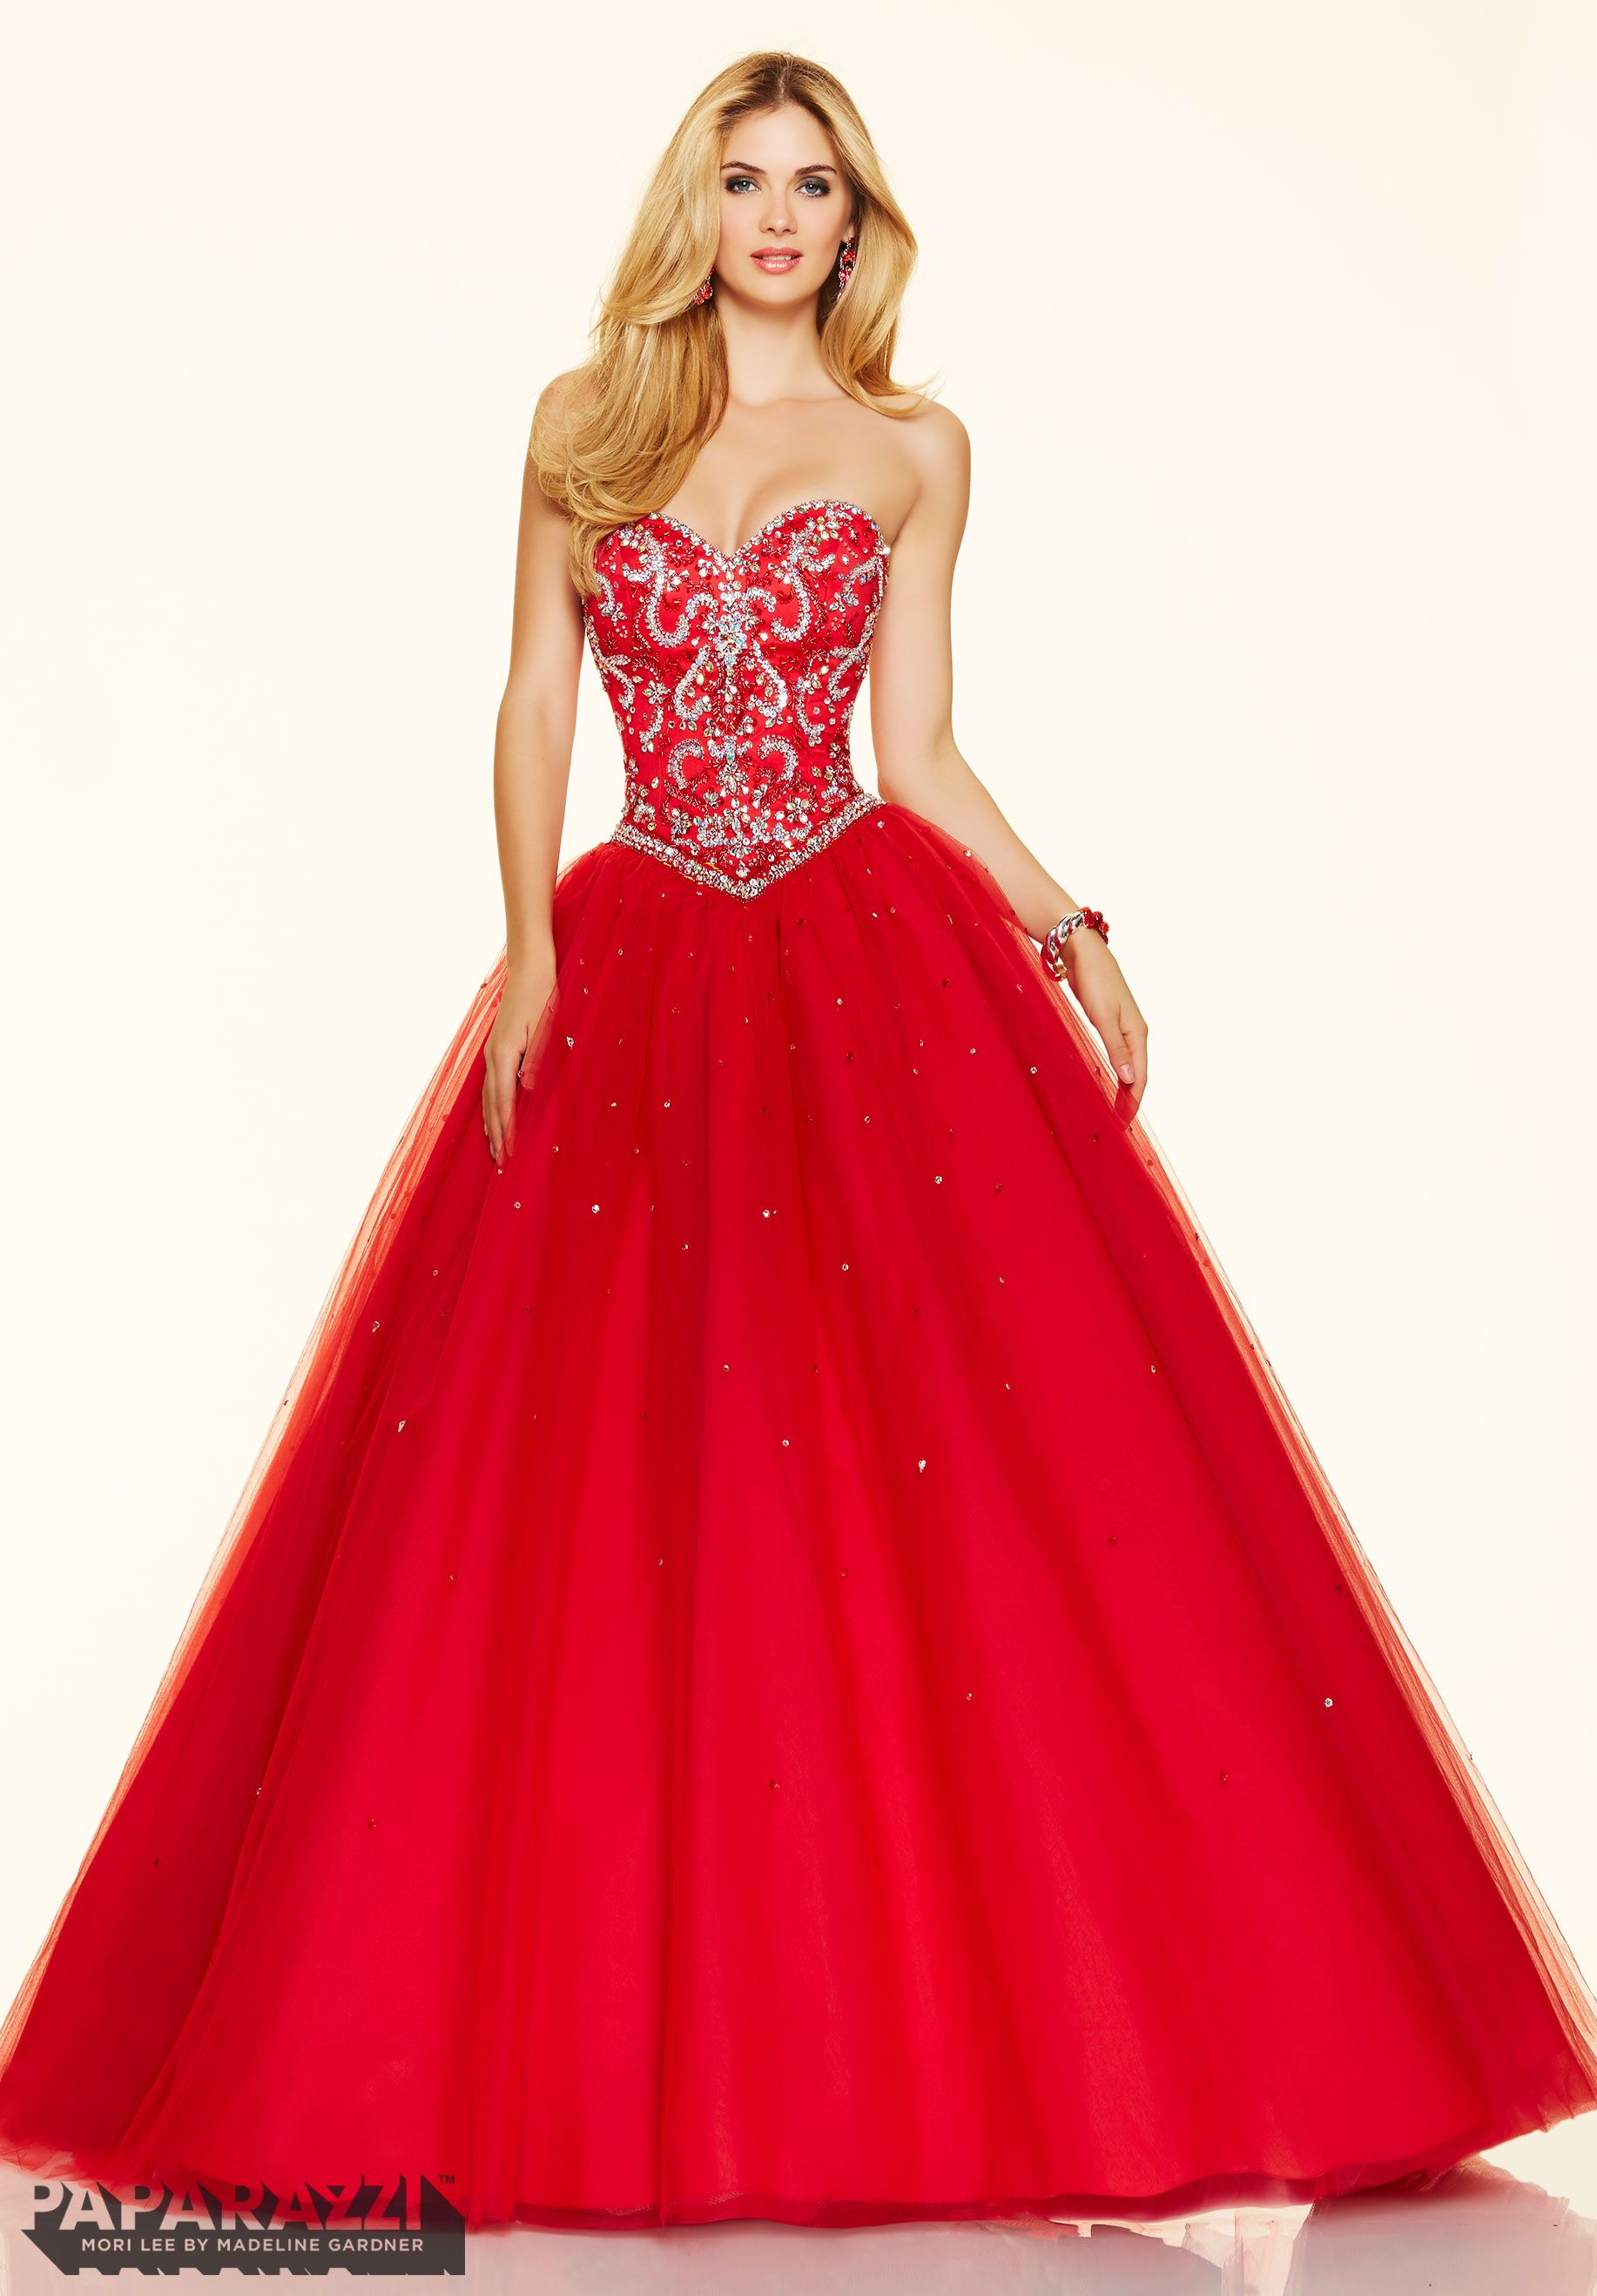 17 Best images about prom on Pinterest | Gowns, Tony bowls and ...